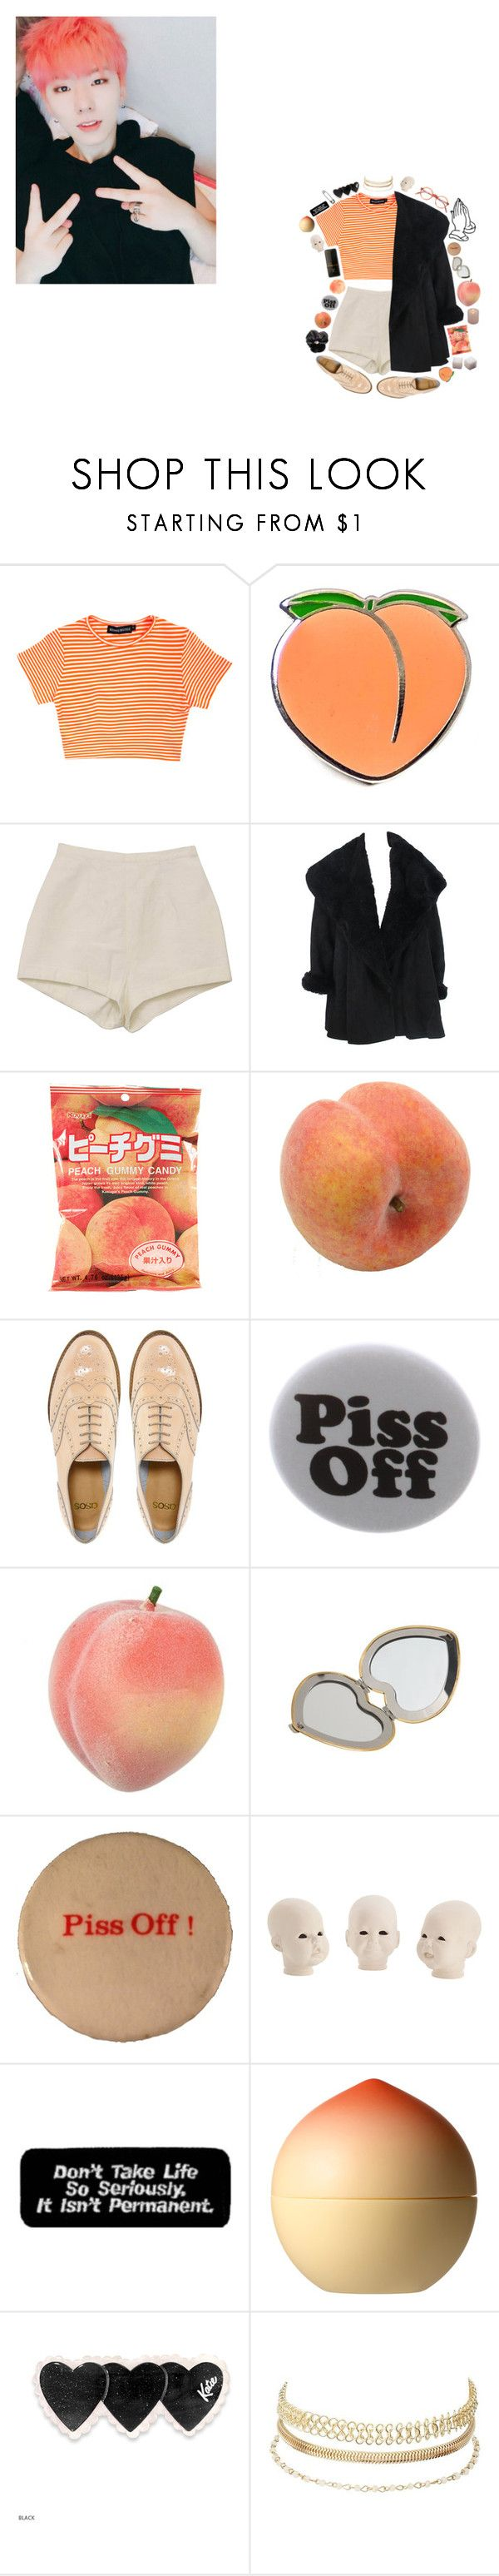 """""""All I Do - Monsta X"""" by choi-sc ❤ liked on Polyvore featuring PINTRILL, Calvin Klein, Pavilion Broadway, ASOS, Humör, Aerie, Louis Vuitton, CO, Tony Moly and Charlotte Russe"""